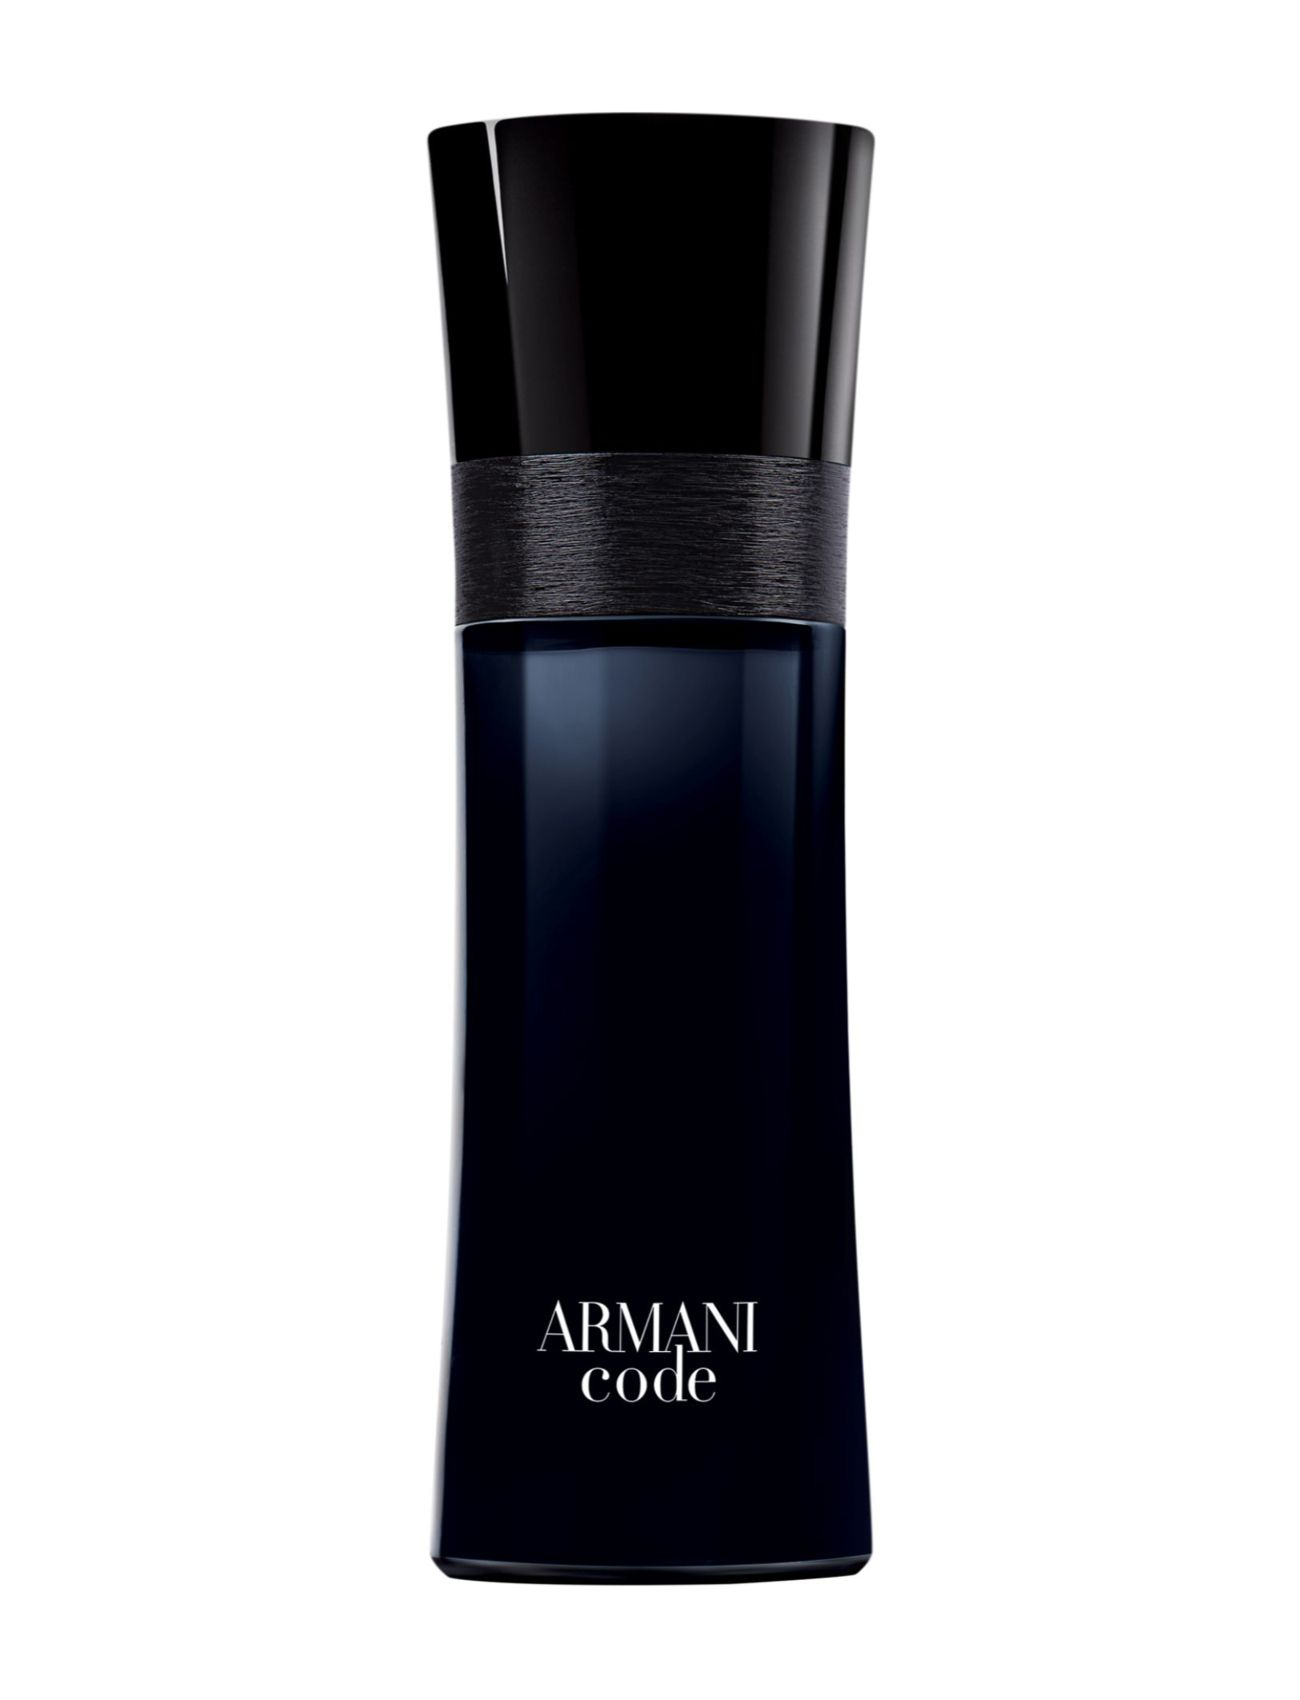 Giorgio Armani Armani Code Men Eau de Toilette 75 ml - NO COLOR CODE